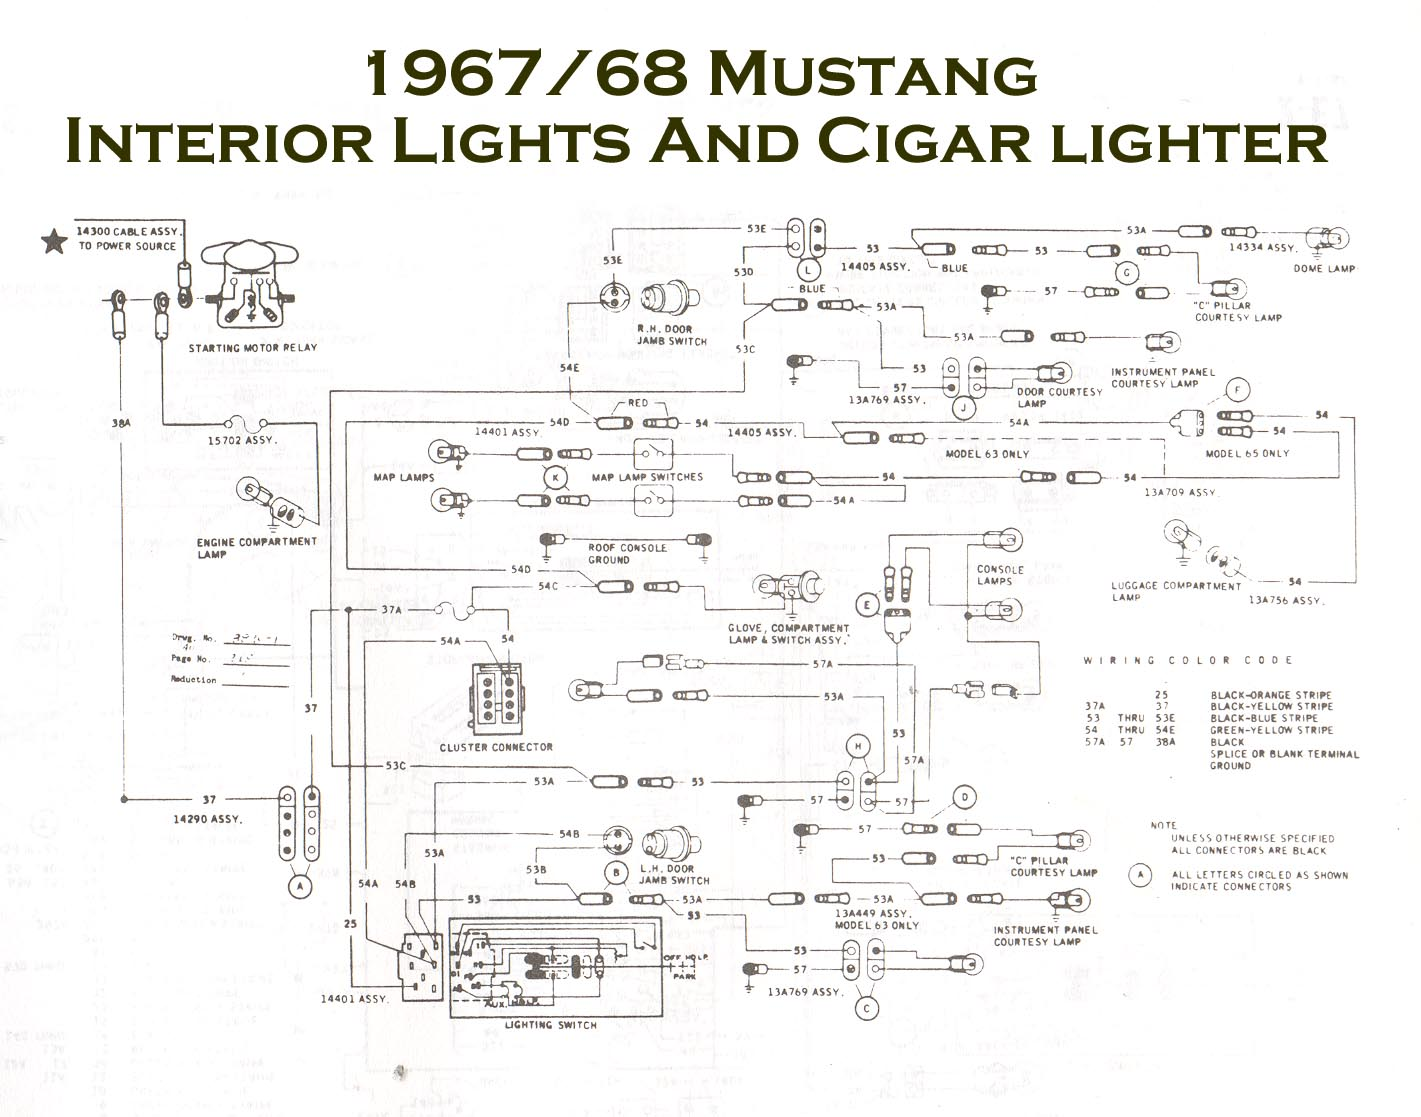 1968 Mustang Fuse Box Diagram Schematic Wiring Diagrams For 1995 Ford 67 Third Level